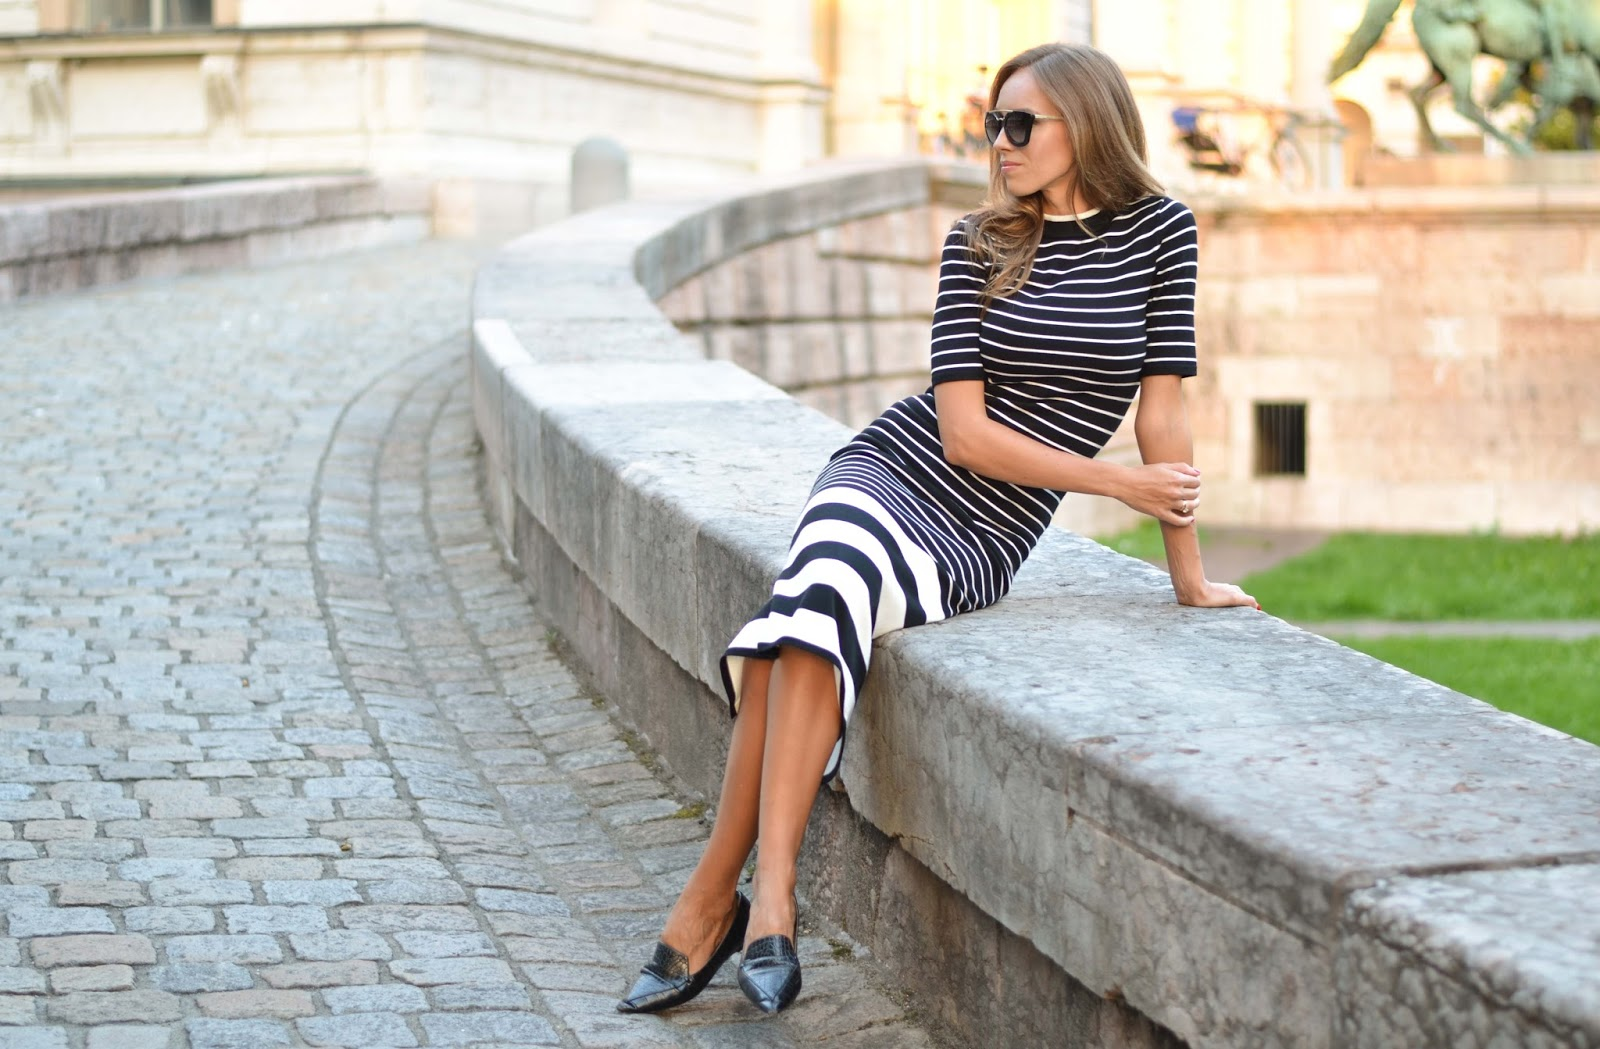 kristjaana mere hm black white striped knitted top midiskirt